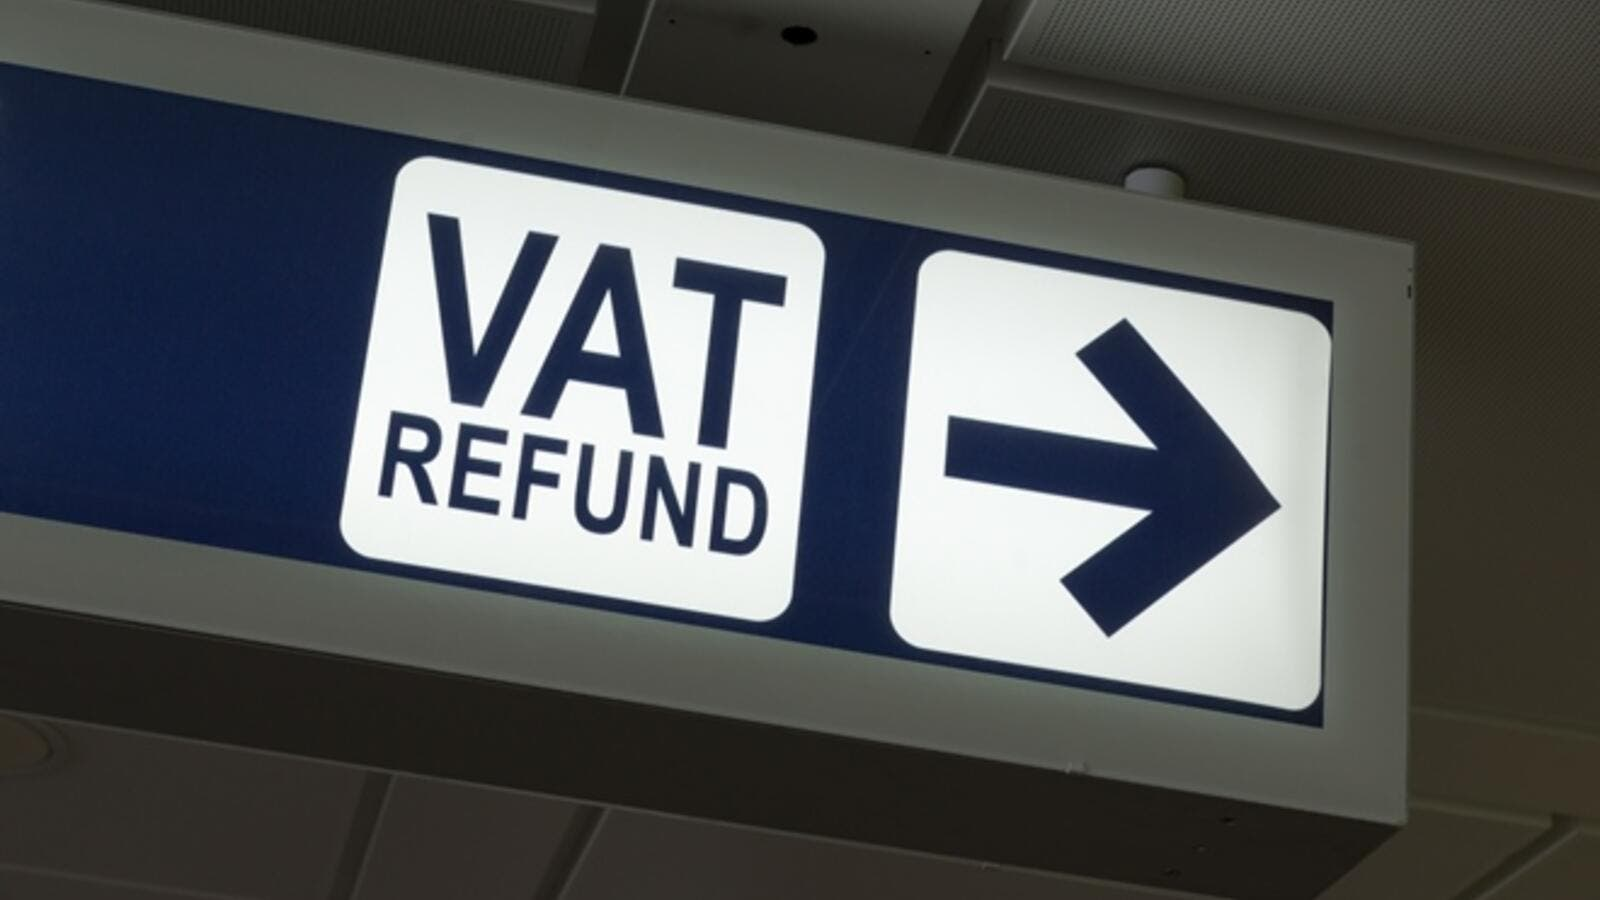 The move to refund VAT, yet again shows UAE's strategic ability to drive the growth of the country. (Shutterstock)